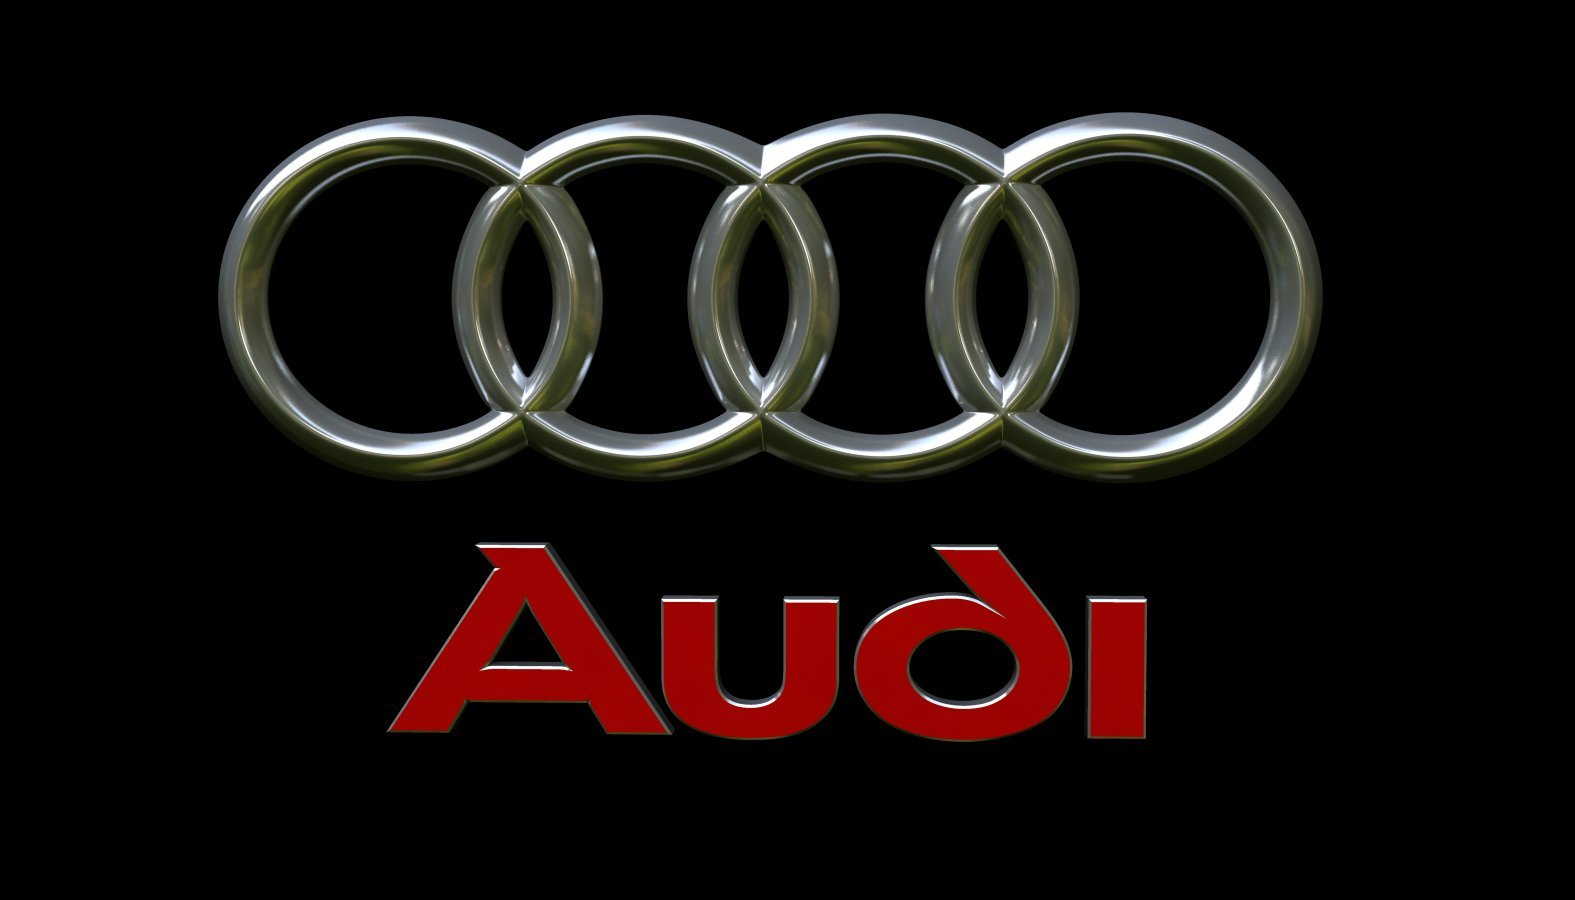 Luxury Brands How To Pronounce Them Correctly Reckon Talk - Audi pronunciation